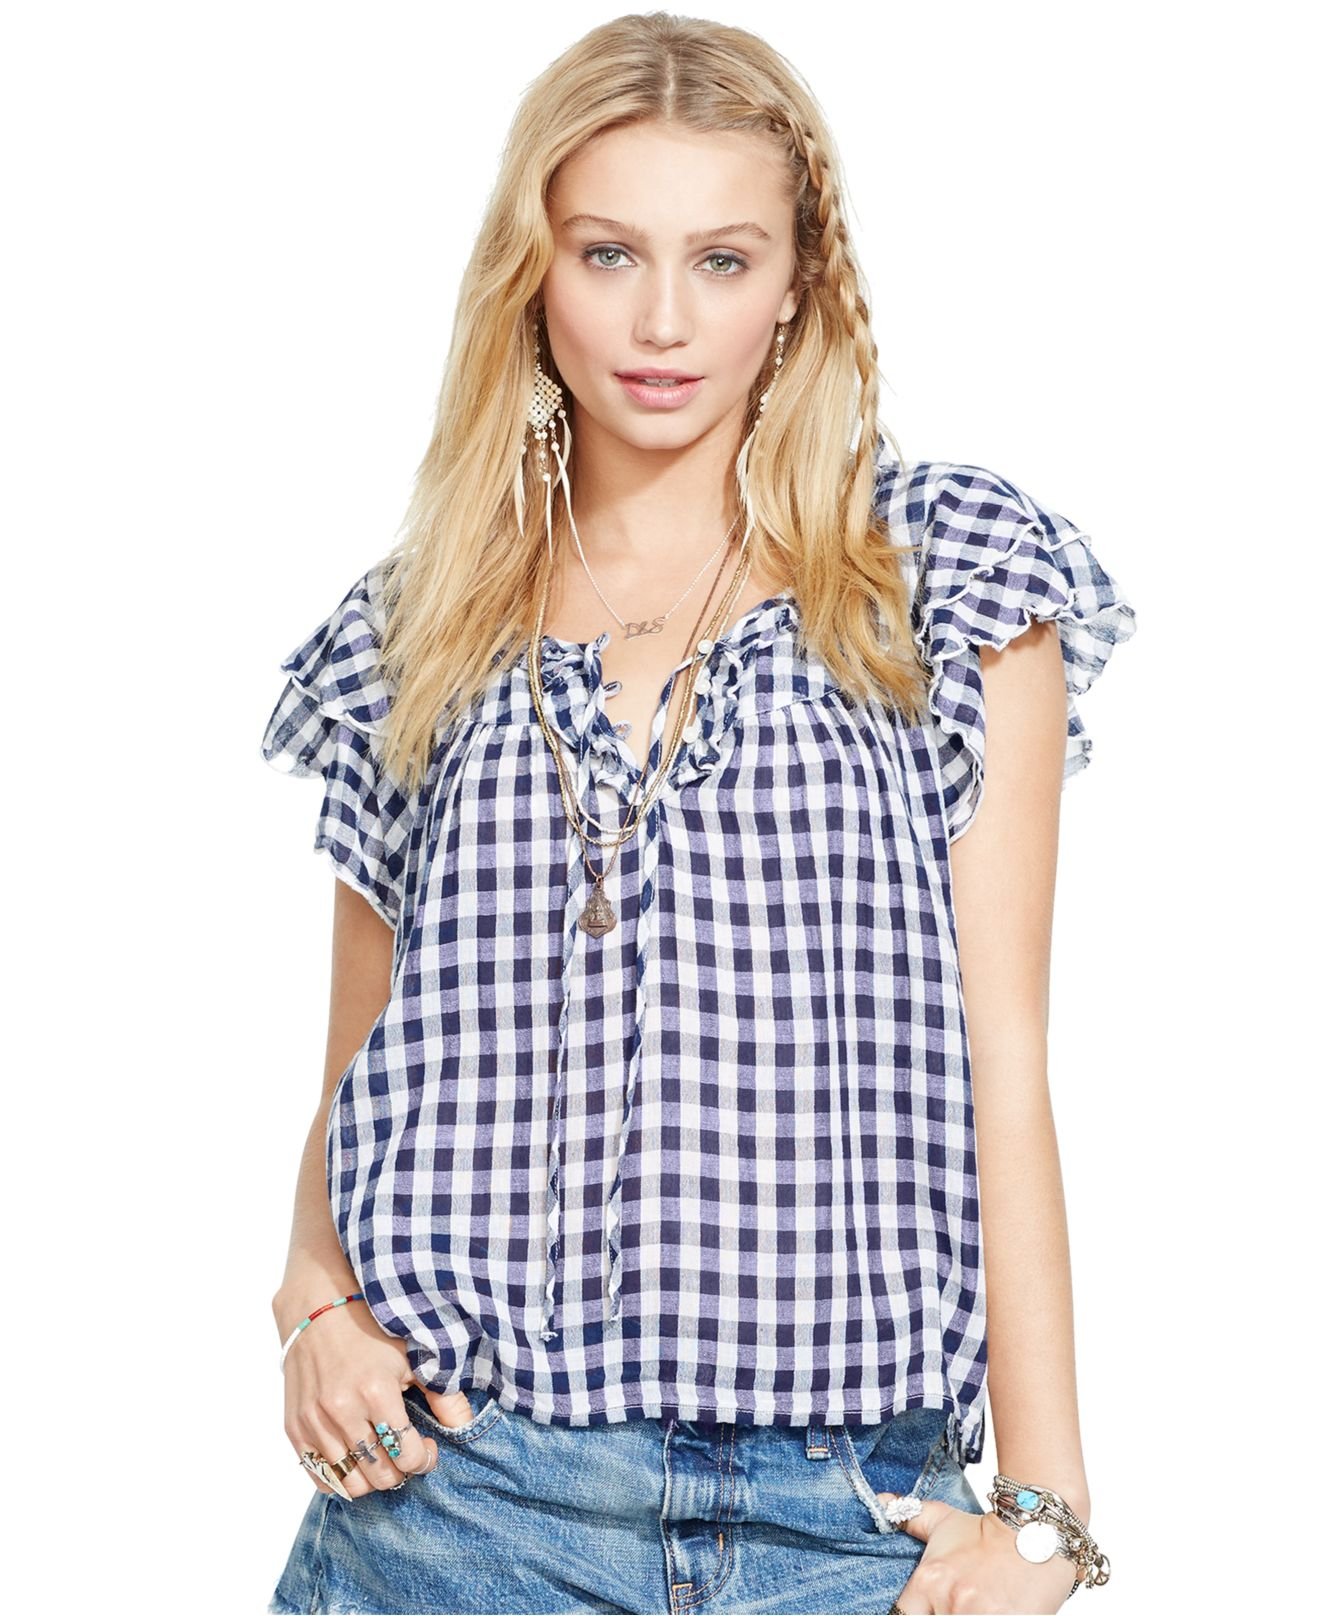 8d162fc242 Blue And White Gingham Shirt Ladies – EDGE Engineering and ...